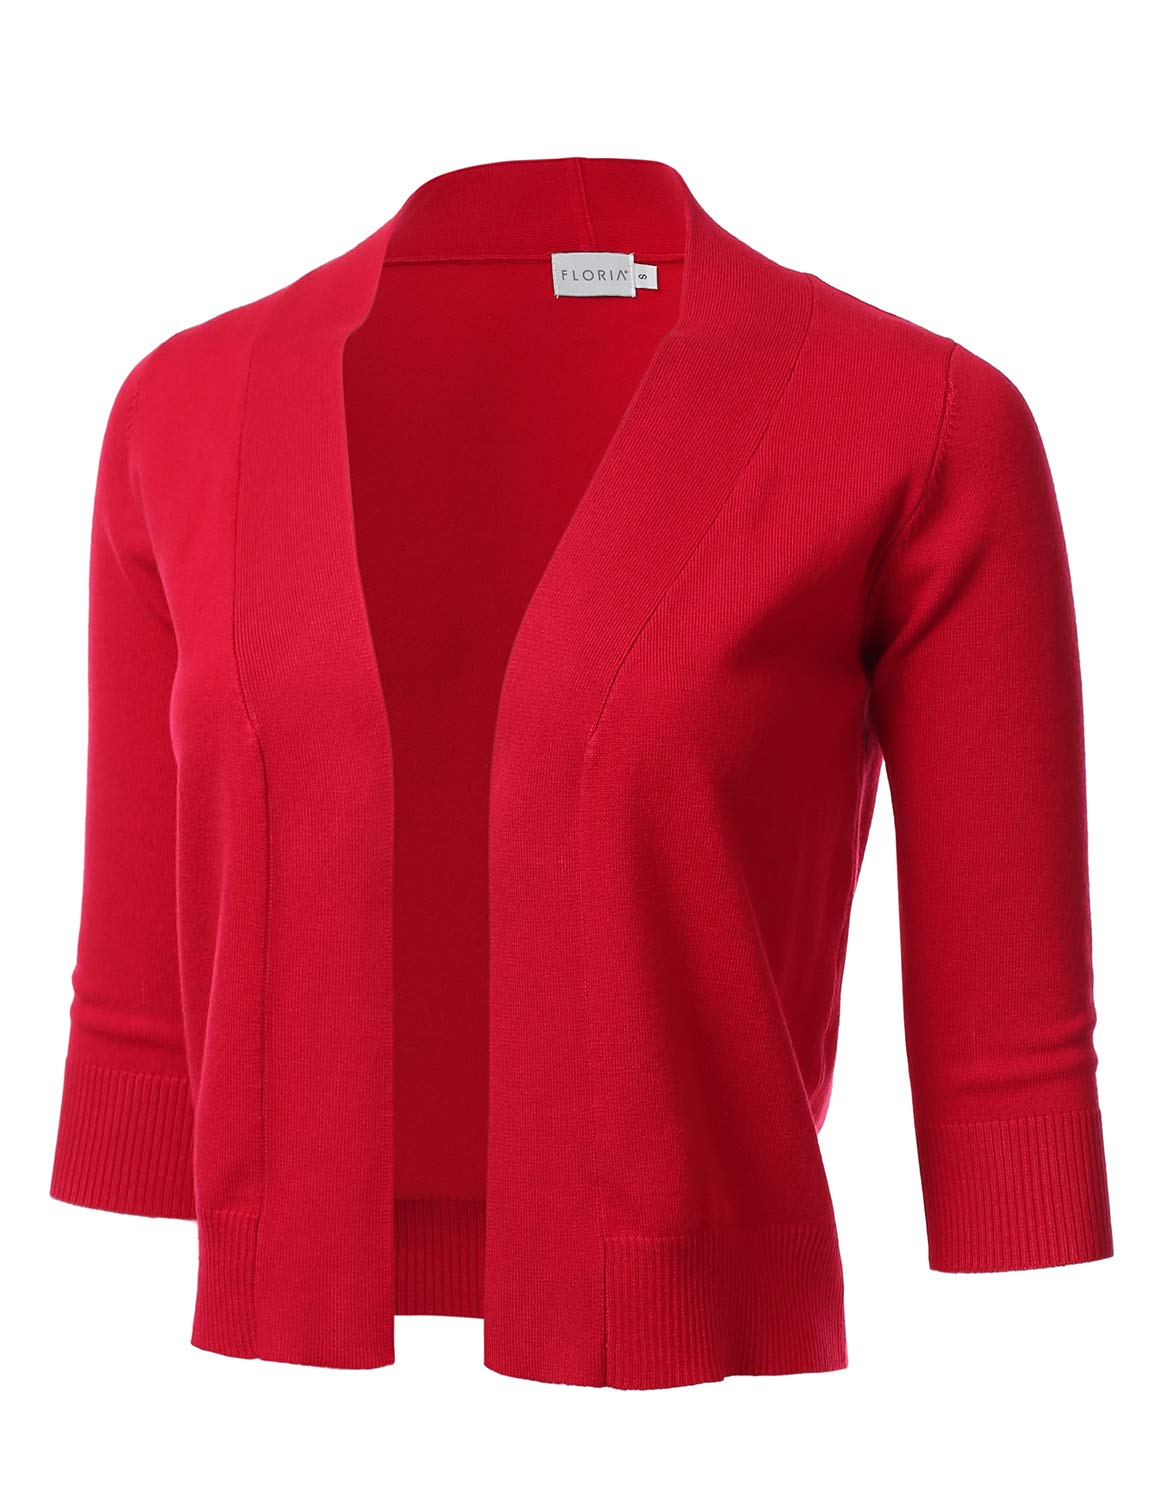 FLORIA Womens Classic 3/4 Sleeve Open Front Cropped Cardigan RED L